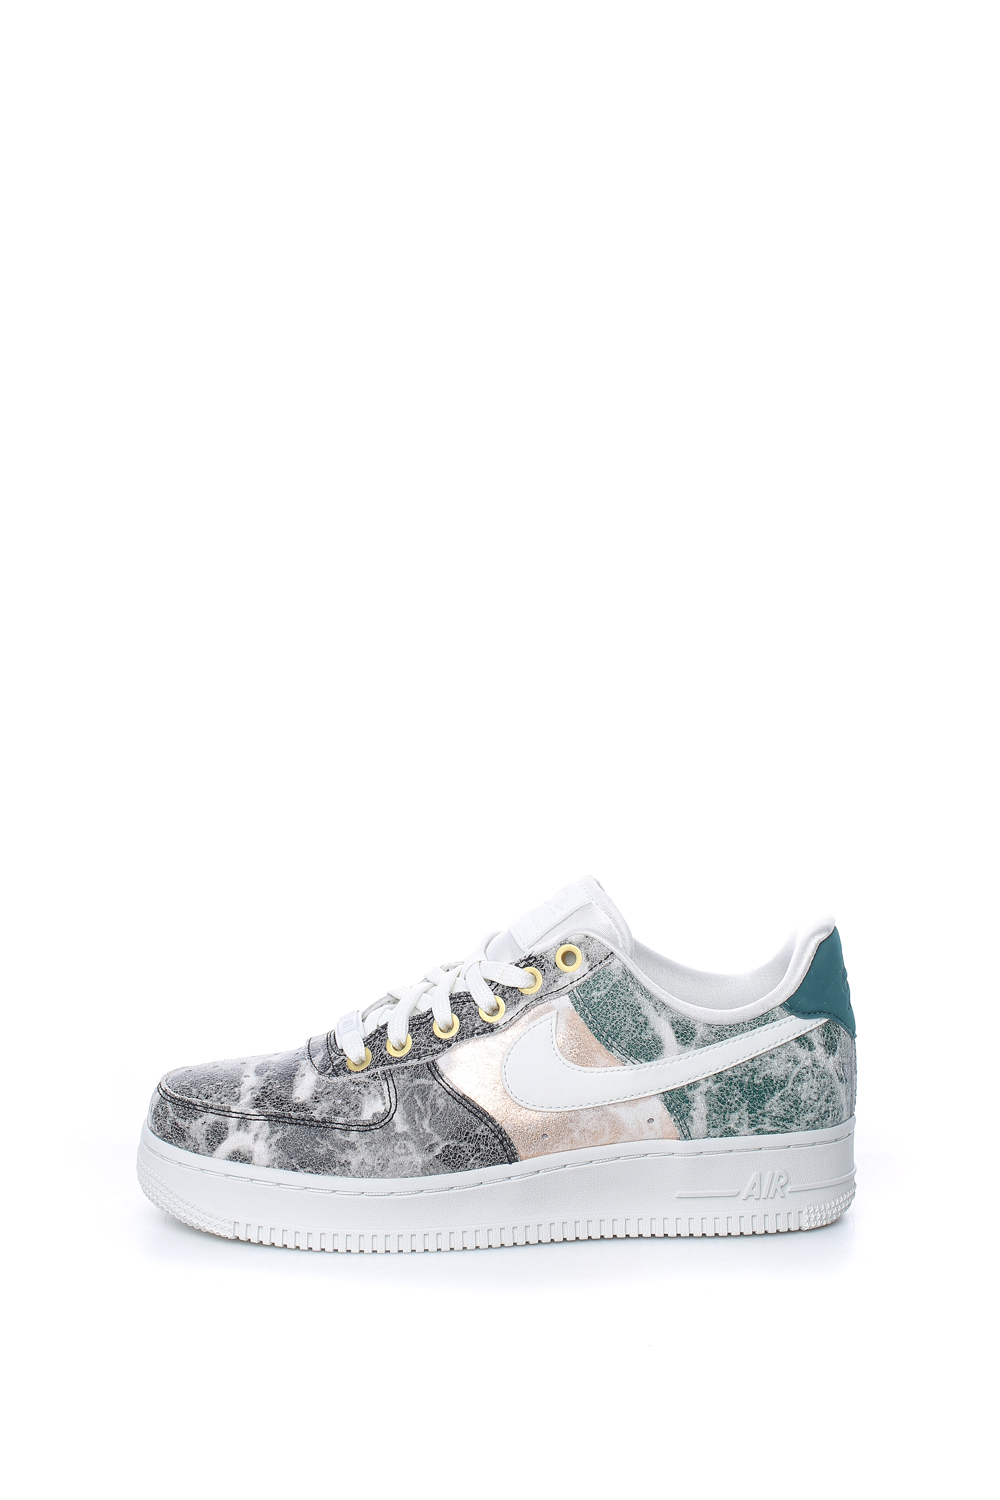 e1f65161bed CollectiveOnline NIKE - Γυναικεία παπούτσια NIKE AIR FORCE 1 '07 LXX με  print